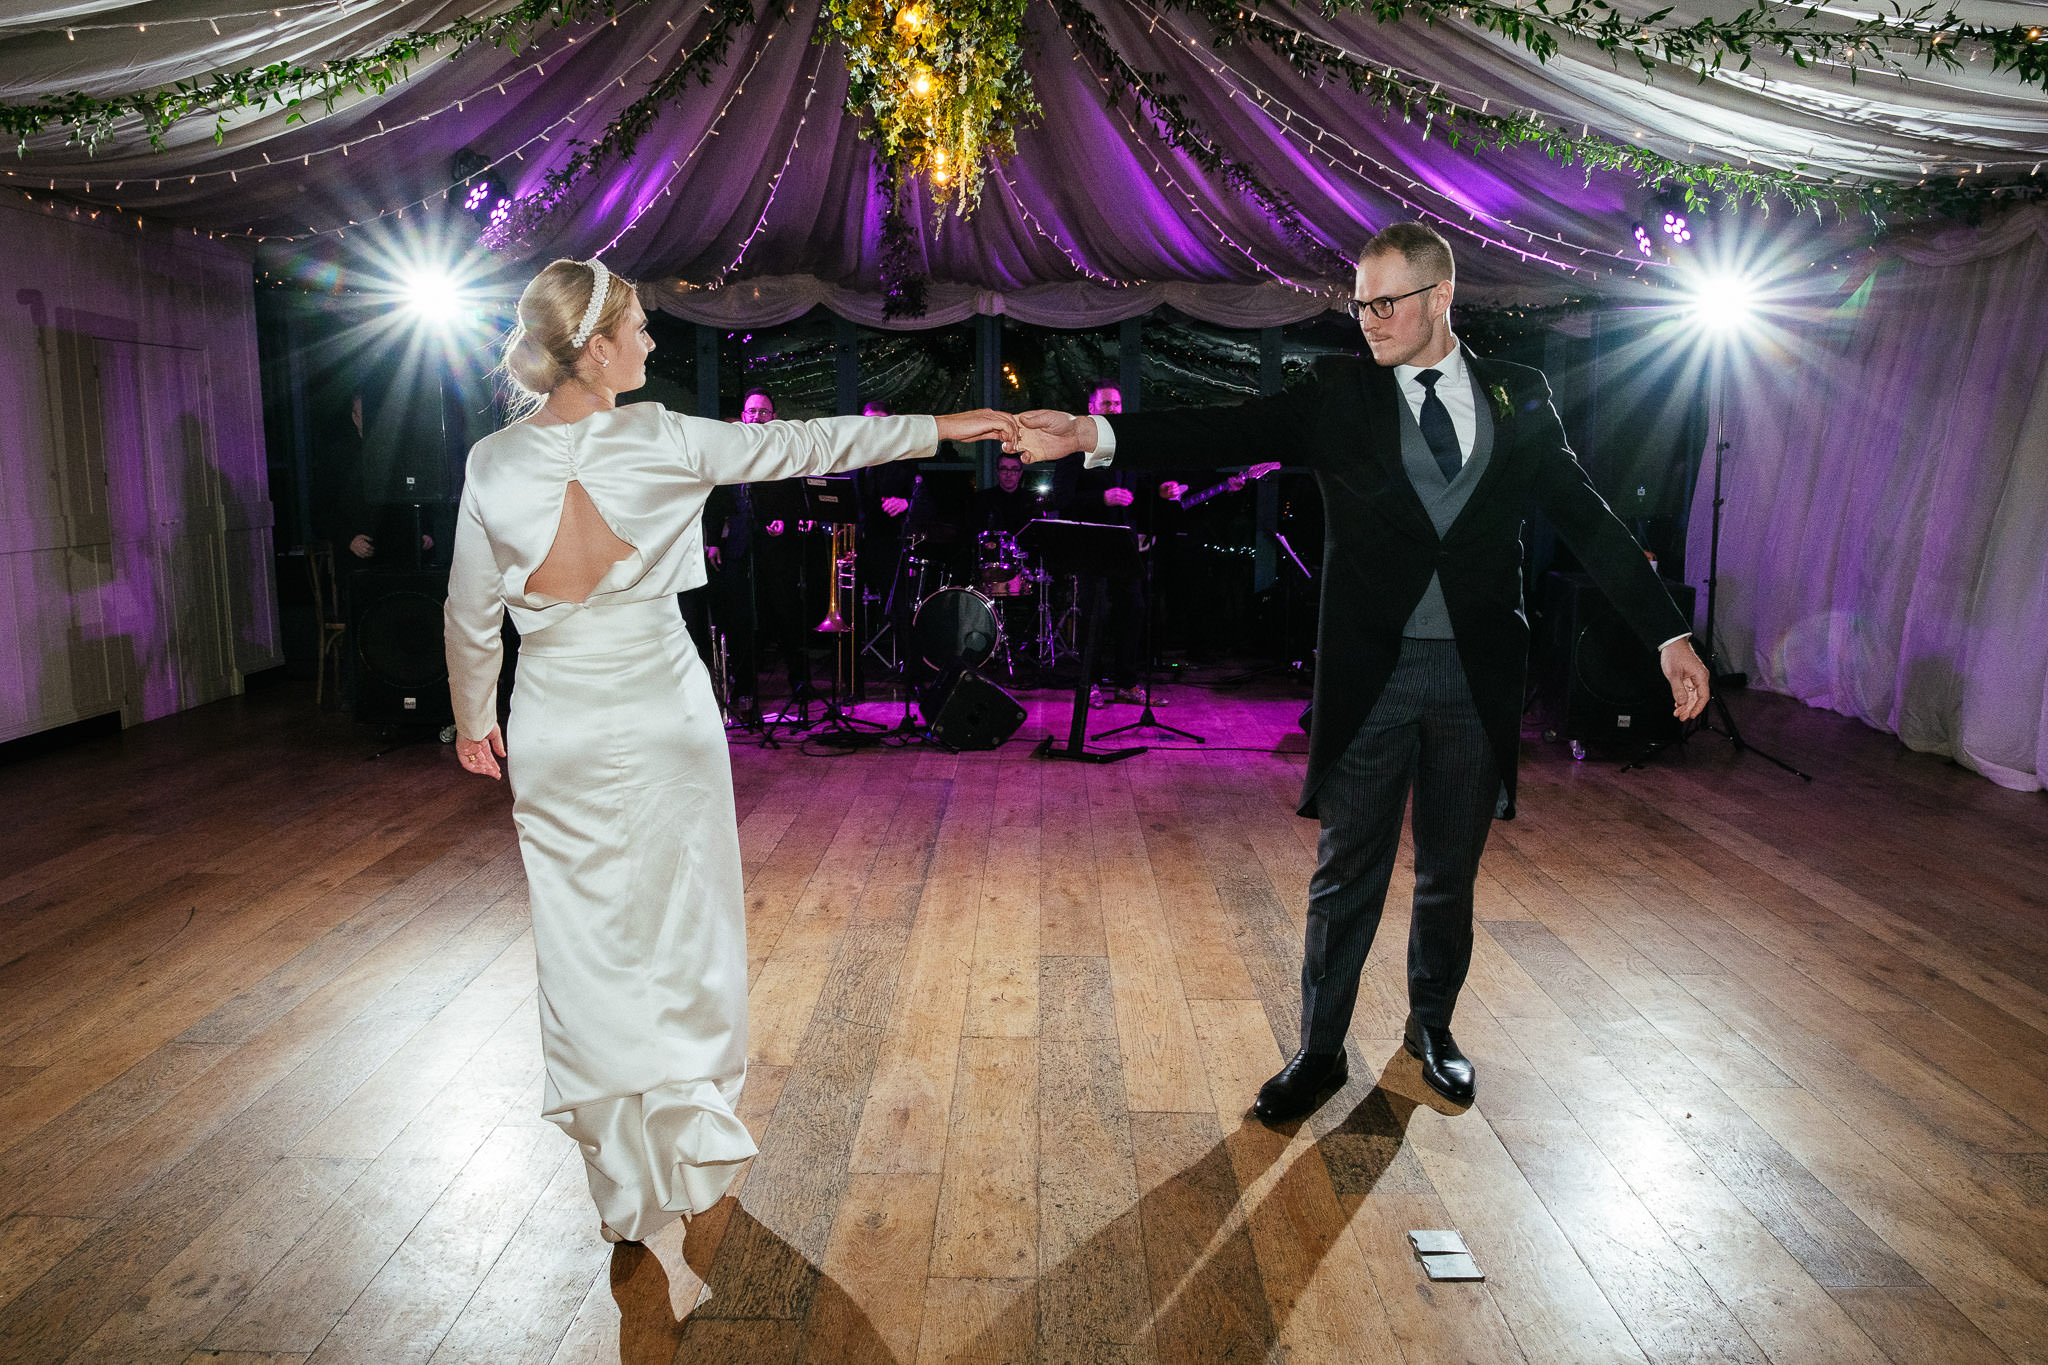 first dance for a bride and groom at their wedding at Virginia Park Lodge